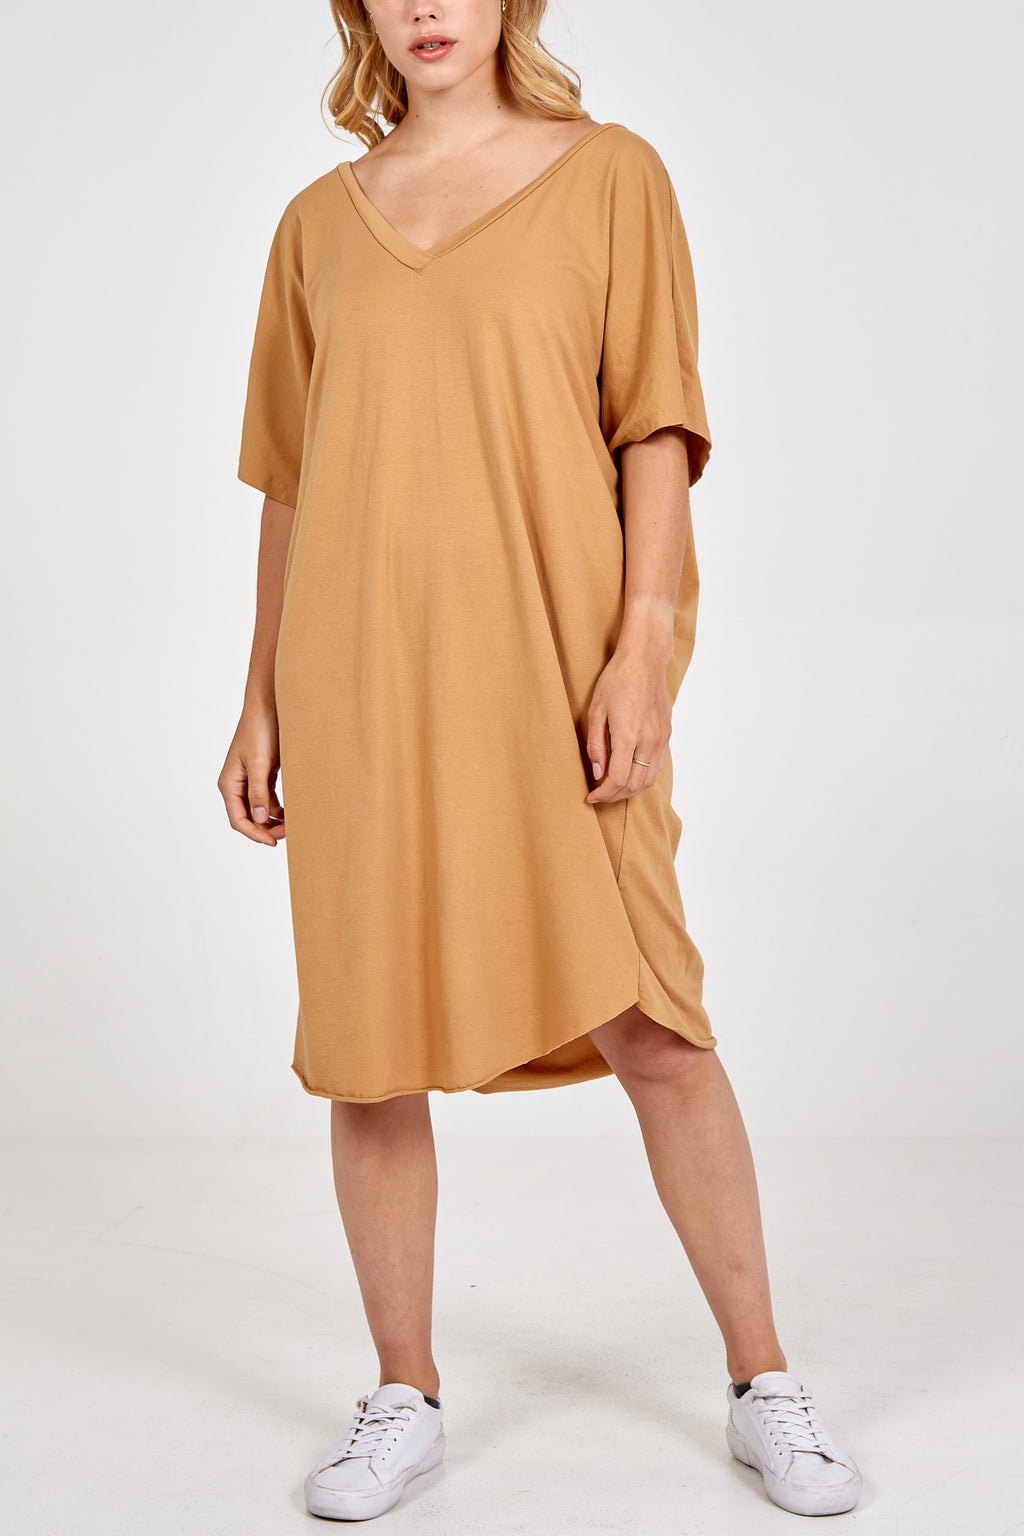 V-Front & V-Back T-Shirt Dress